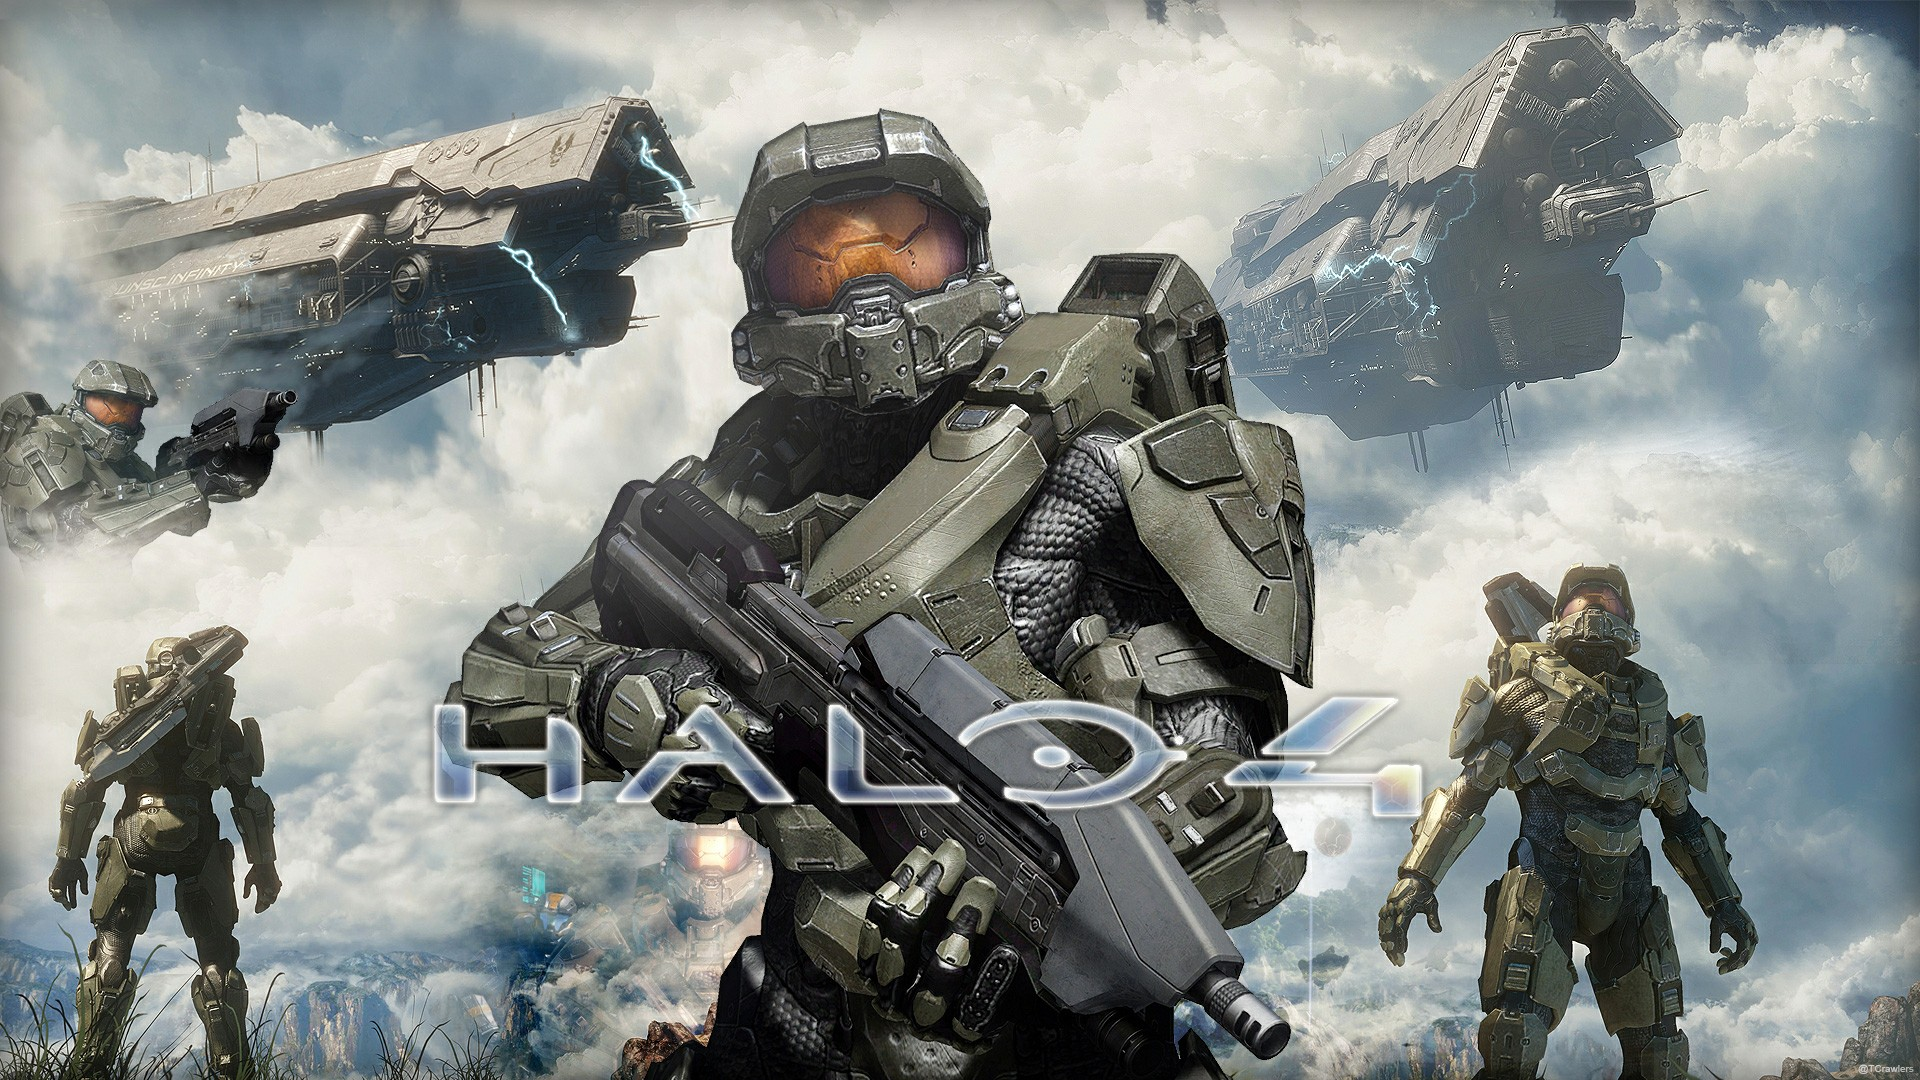 53+ Halo wallpapers ·① Download free cool backgrounds for ...